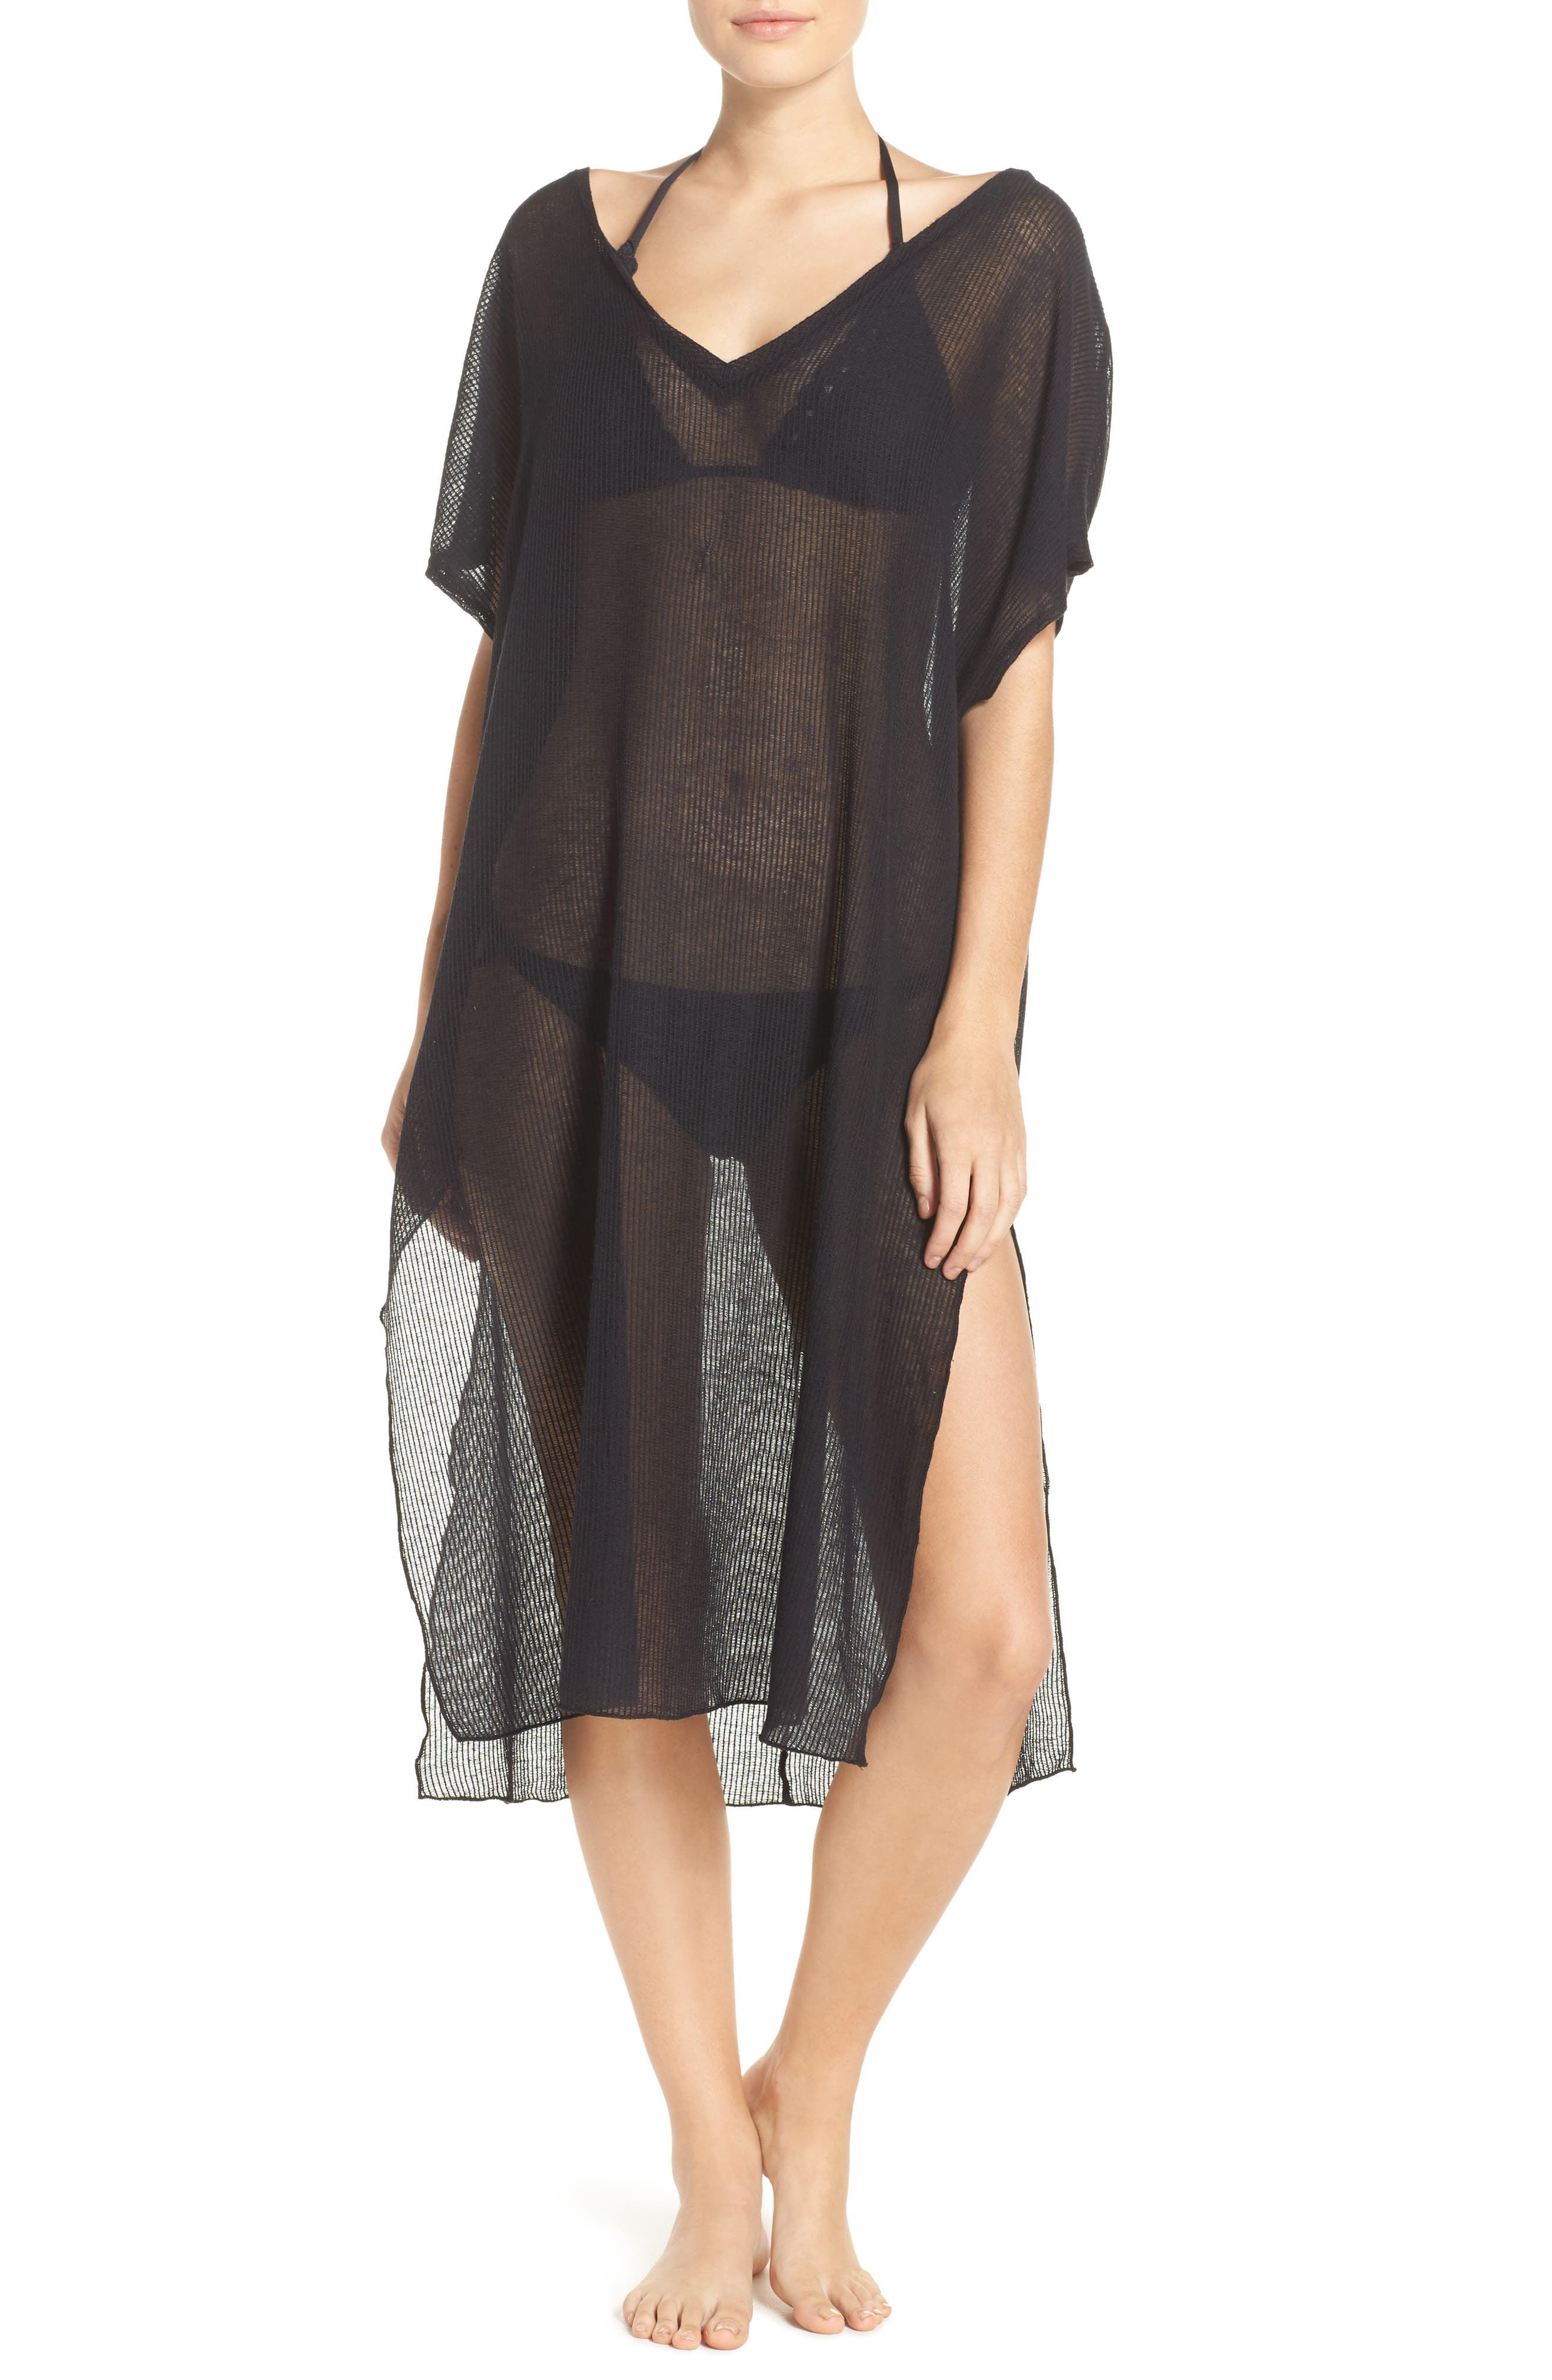 BECCA,                             By the Sea Cover-Up Tunic,                             Alternate thumbnail 2, color,                             001